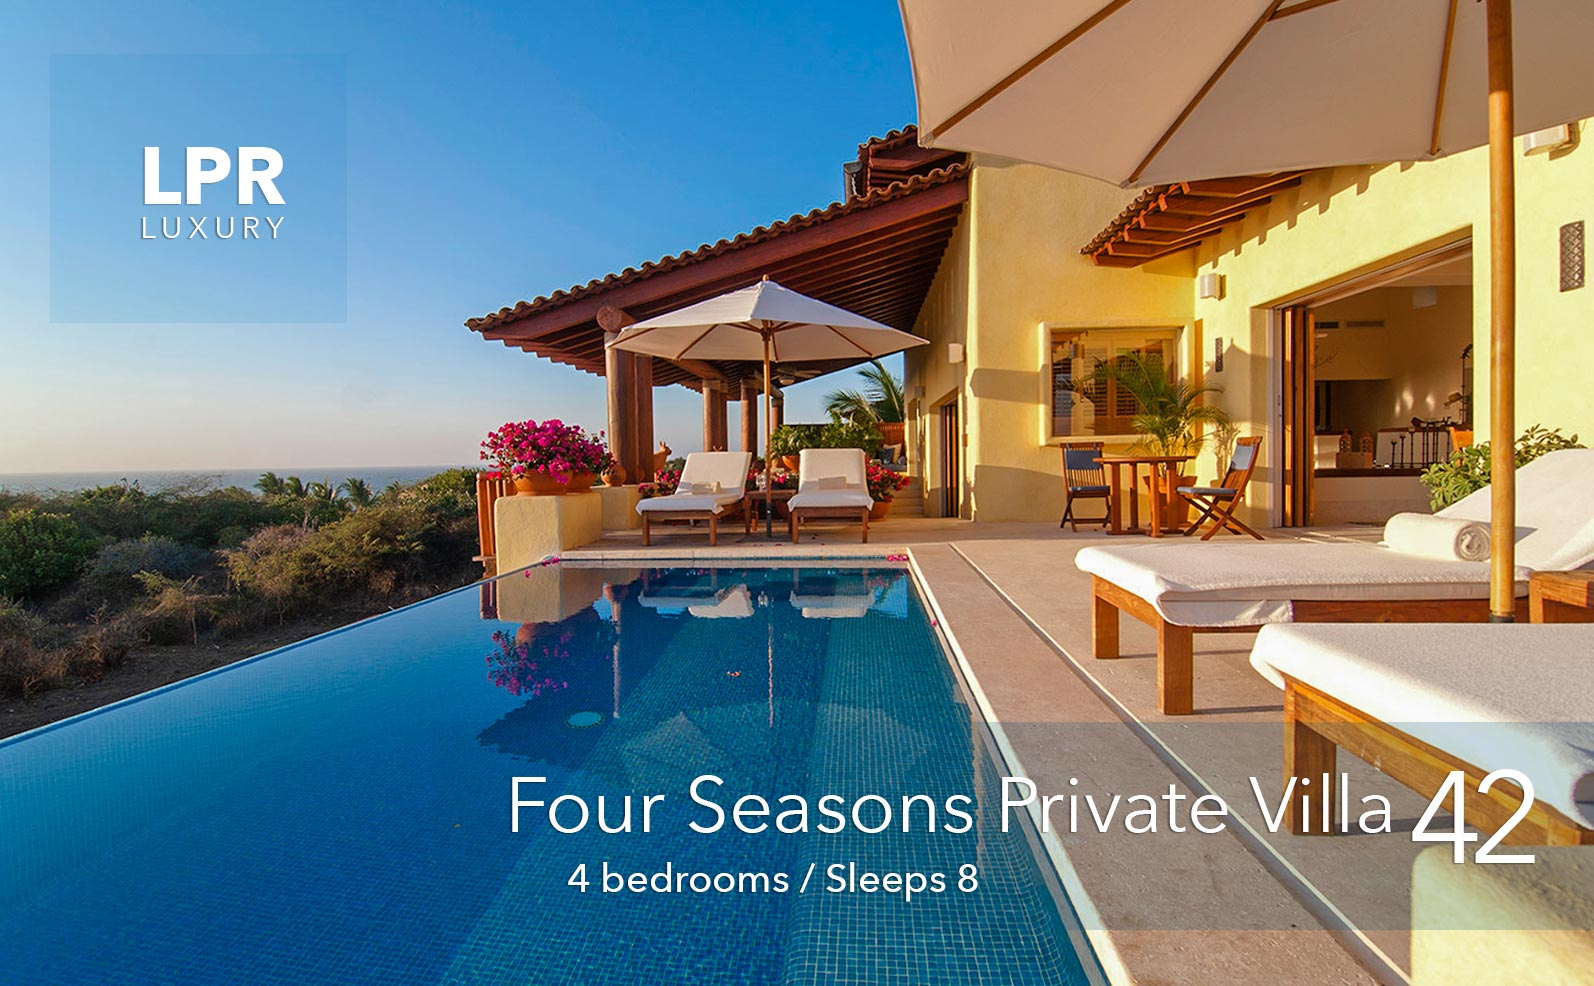 four seasons private villa 42 luxury punta mita real estate and vacation rentals mexico